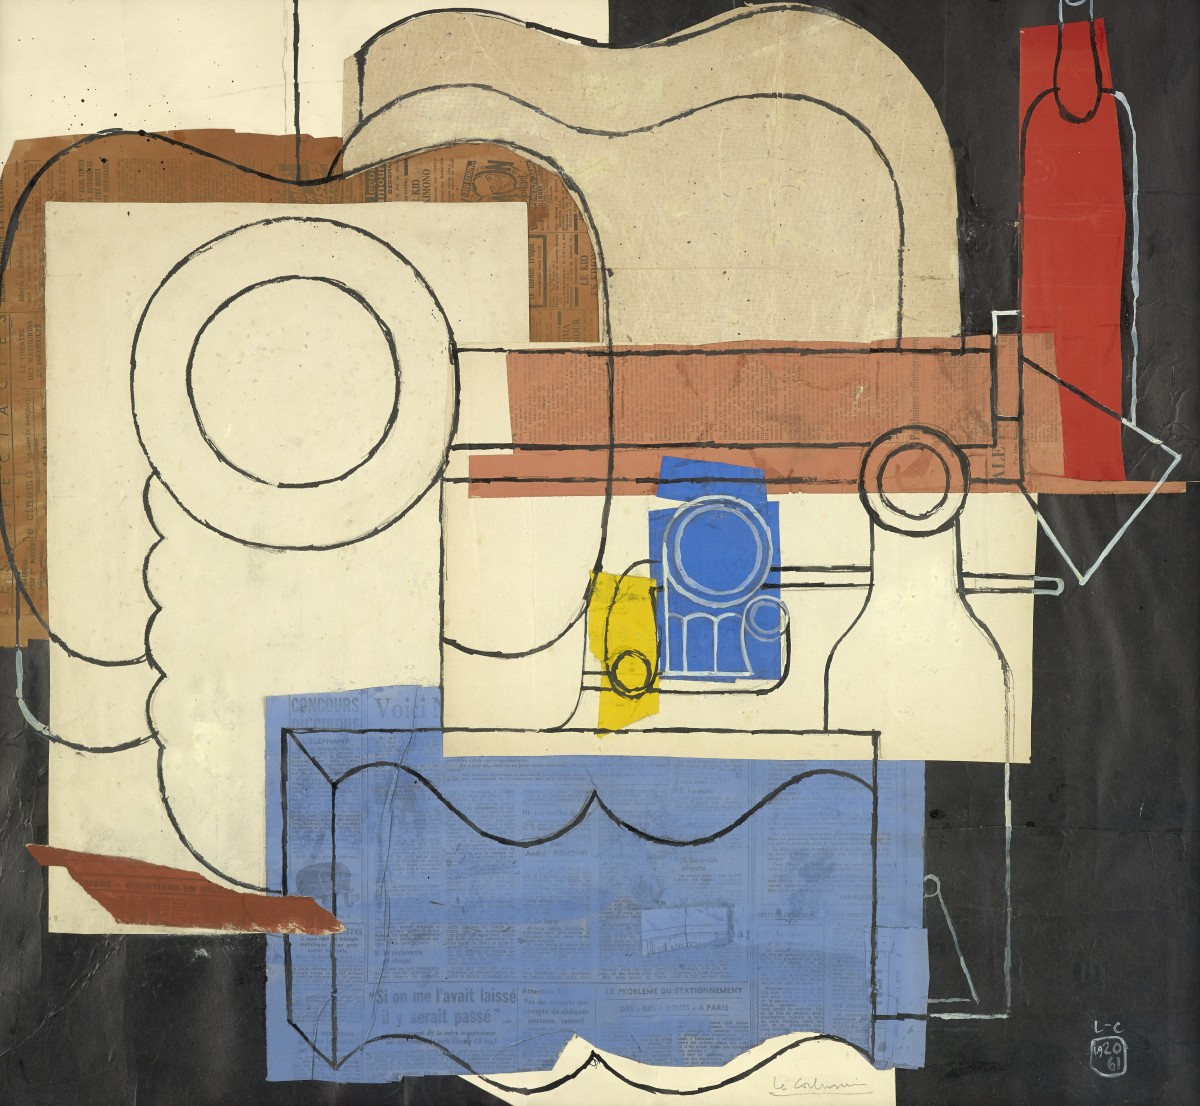 <p>Le Corbusier </p><p>(1887-1965)</p><p>Still life with guitar, pile of plates, an open book, pipes, bottles and glasses</p><p>1961</p><p>Collage, gouache and ink on paper</p><p>74 x 81 cm</p><p>Monogrammed and dated lower right: 'L-C / 1920 / 61'</p>